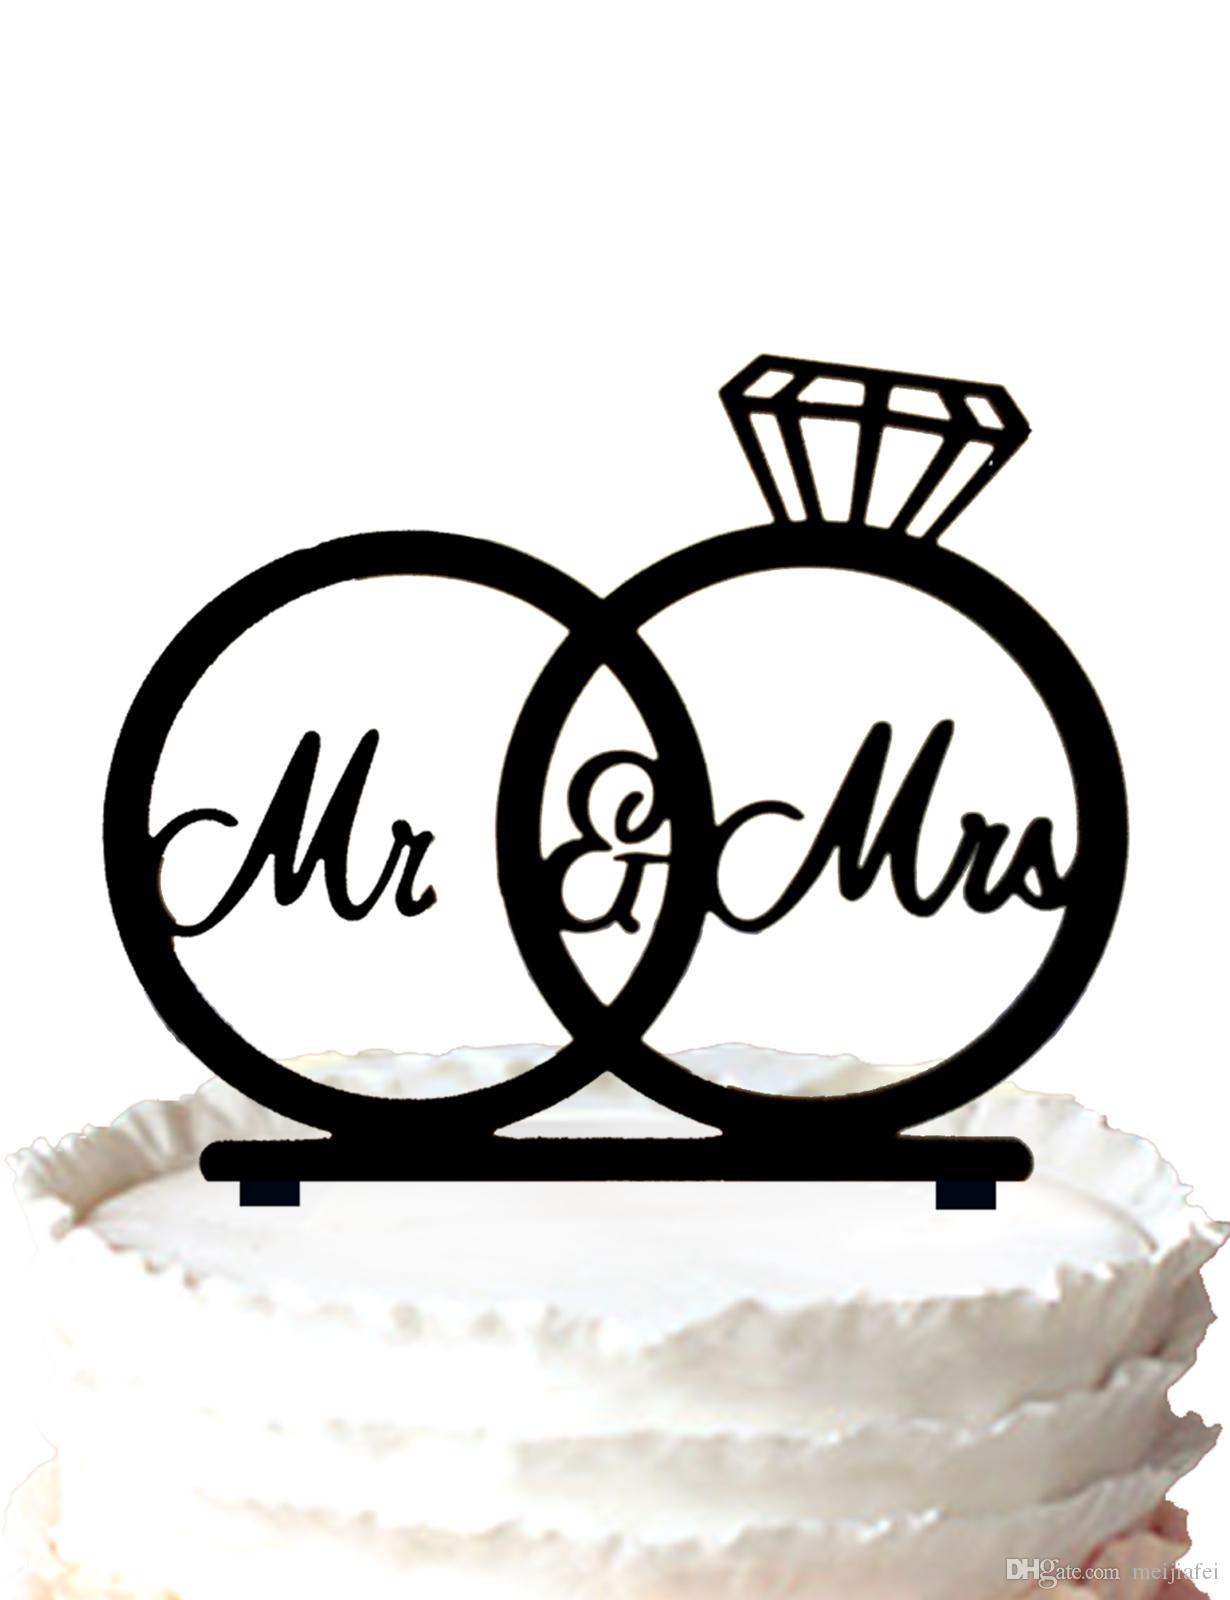 2020 Mr Amp Mrs Silhouette Wedding Rings Cake Topper